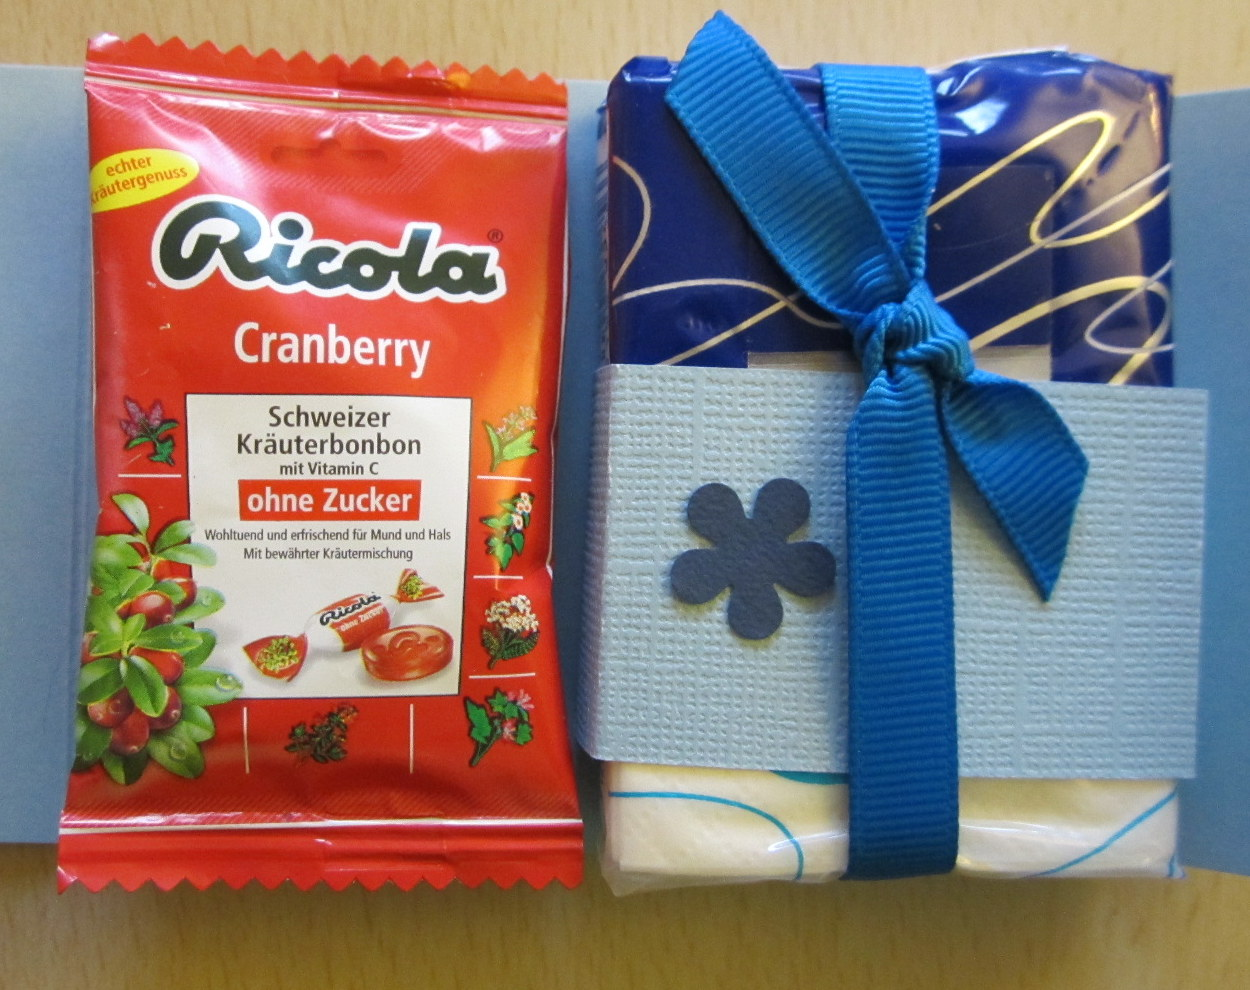 diamantin s hobbywelt erste hilfe set bei einer erk ltung. Black Bedroom Furniture Sets. Home Design Ideas